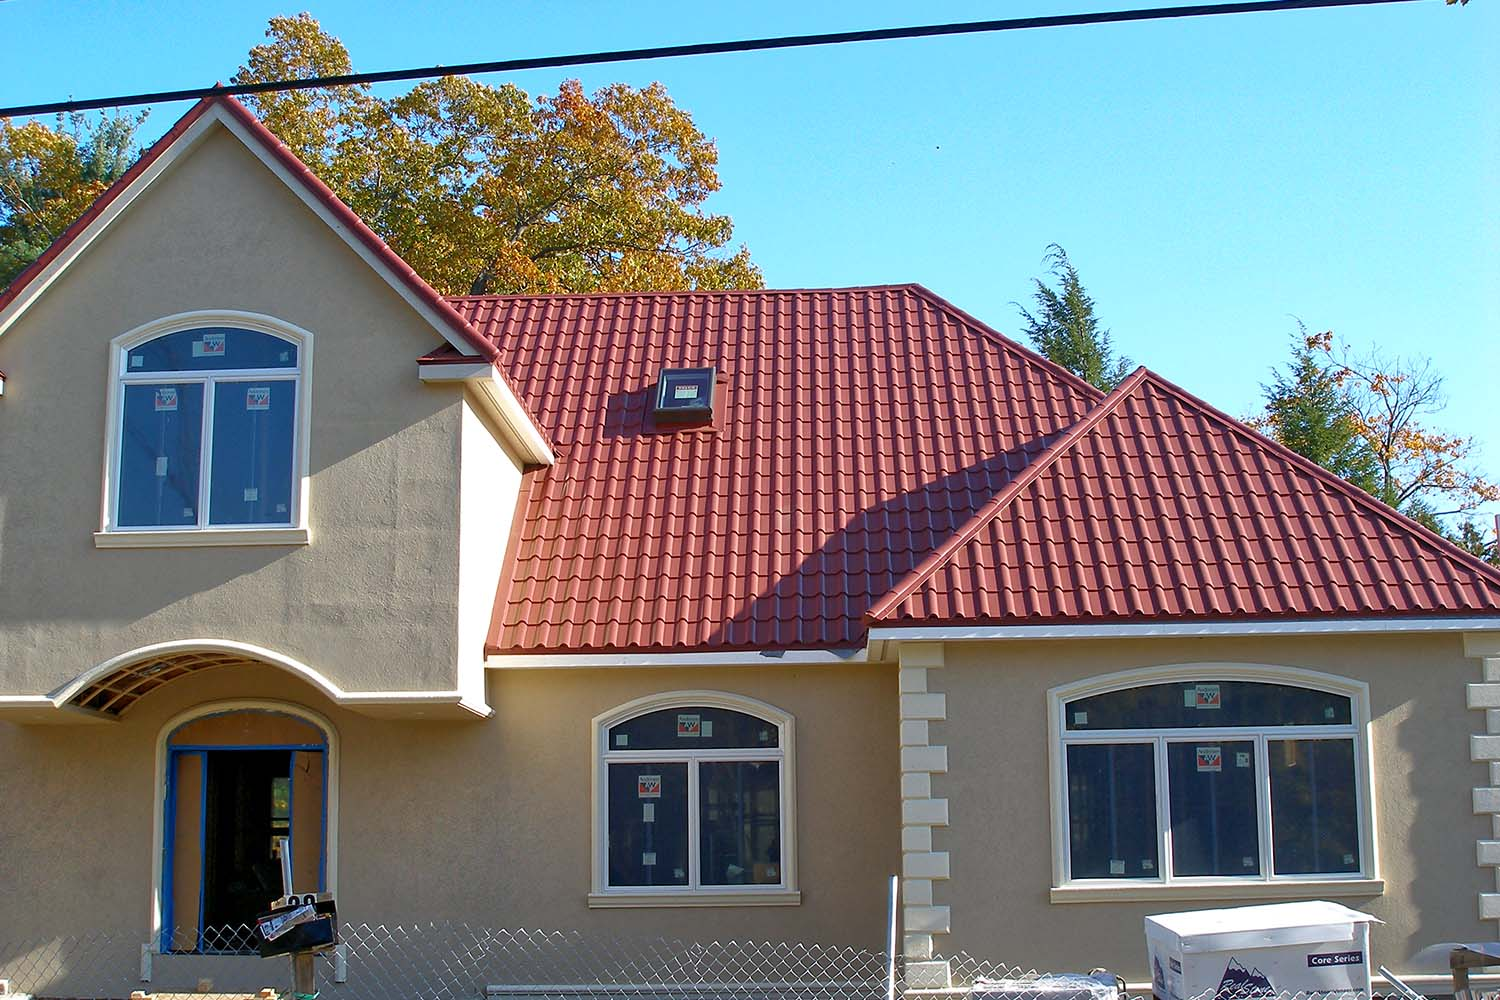 tile red metal mediterranean tile roof new england-2